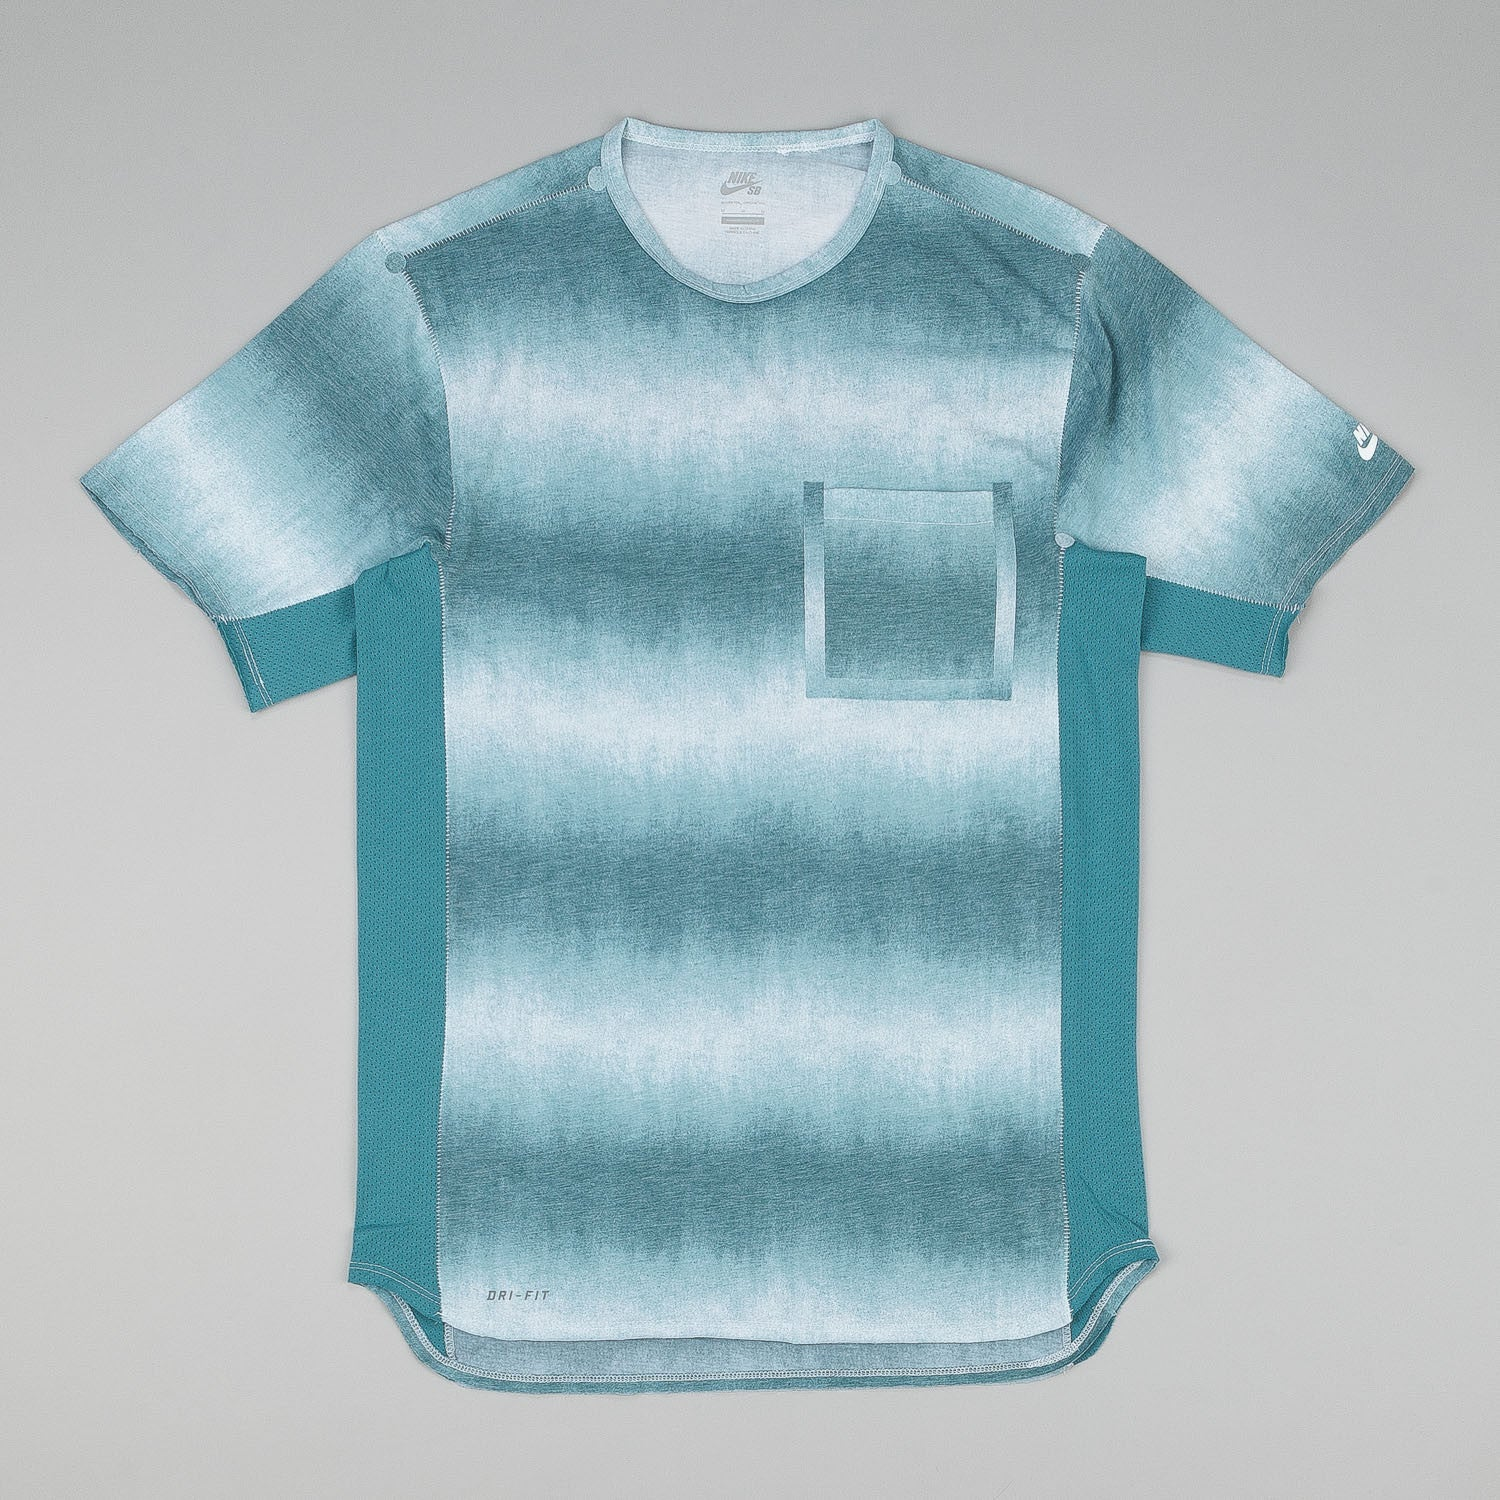 Nike SB Skyline DFC Dip Fade Short Sleeve Pocket T-Shirt - Teal / White